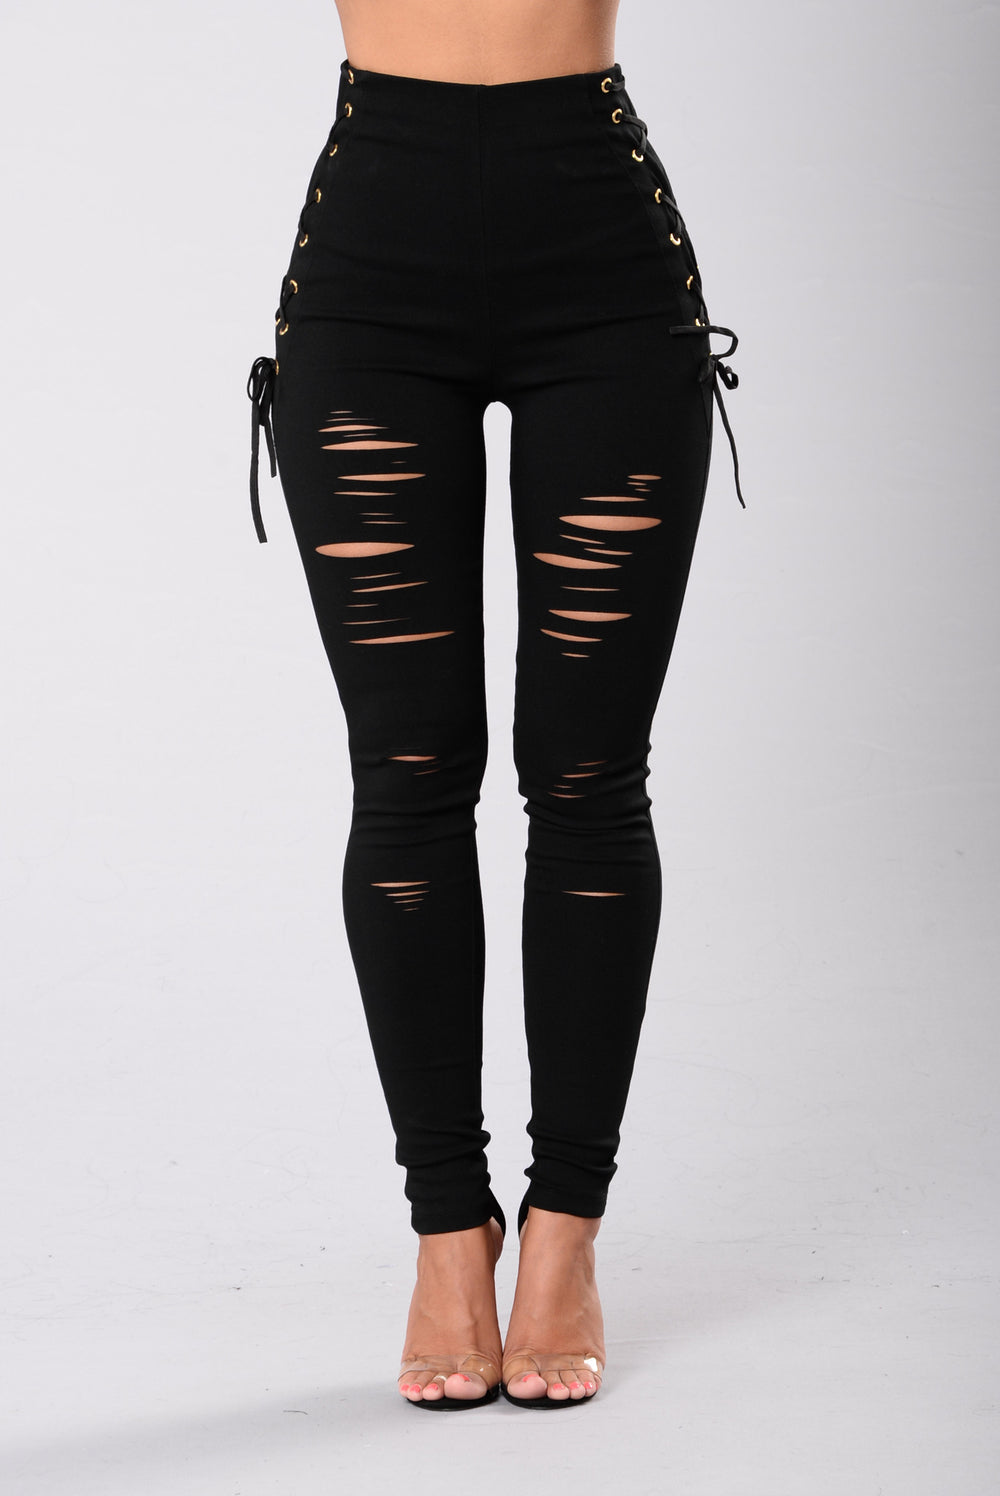 Call Me Fierce Pants - Black